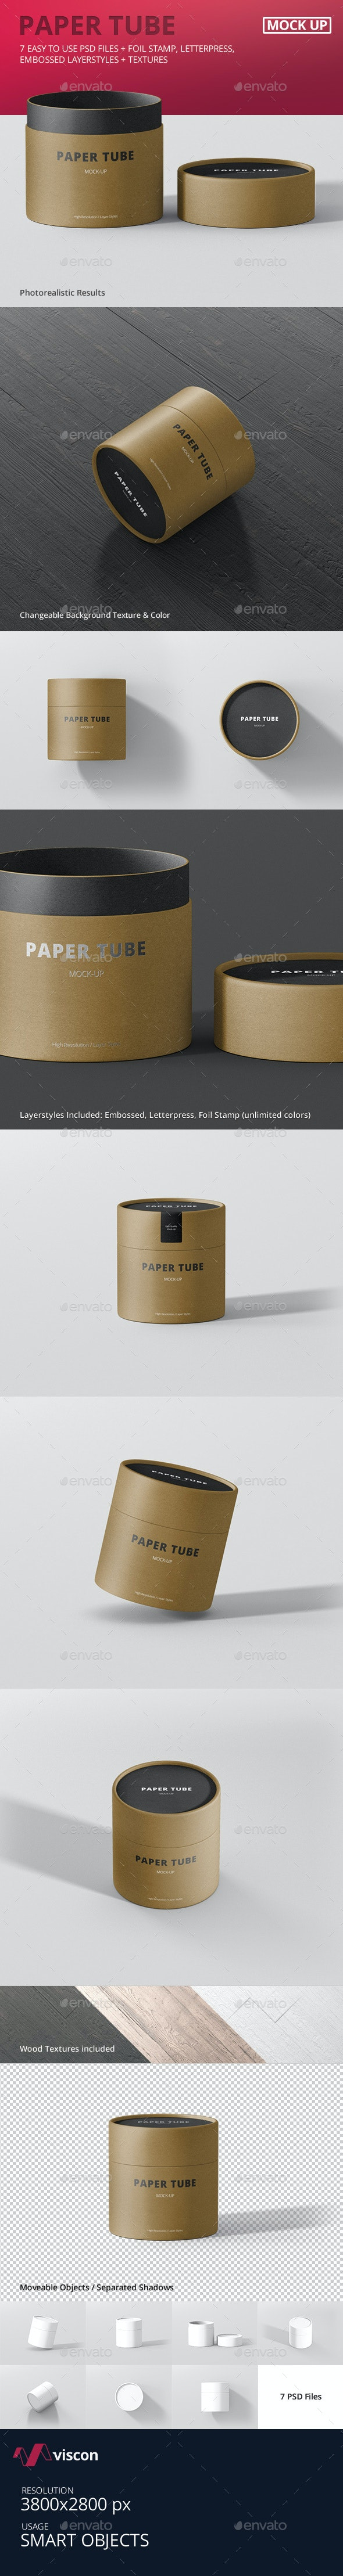 Paper Tube Packaging Mock-Up - Small - Miscellaneous Packaging